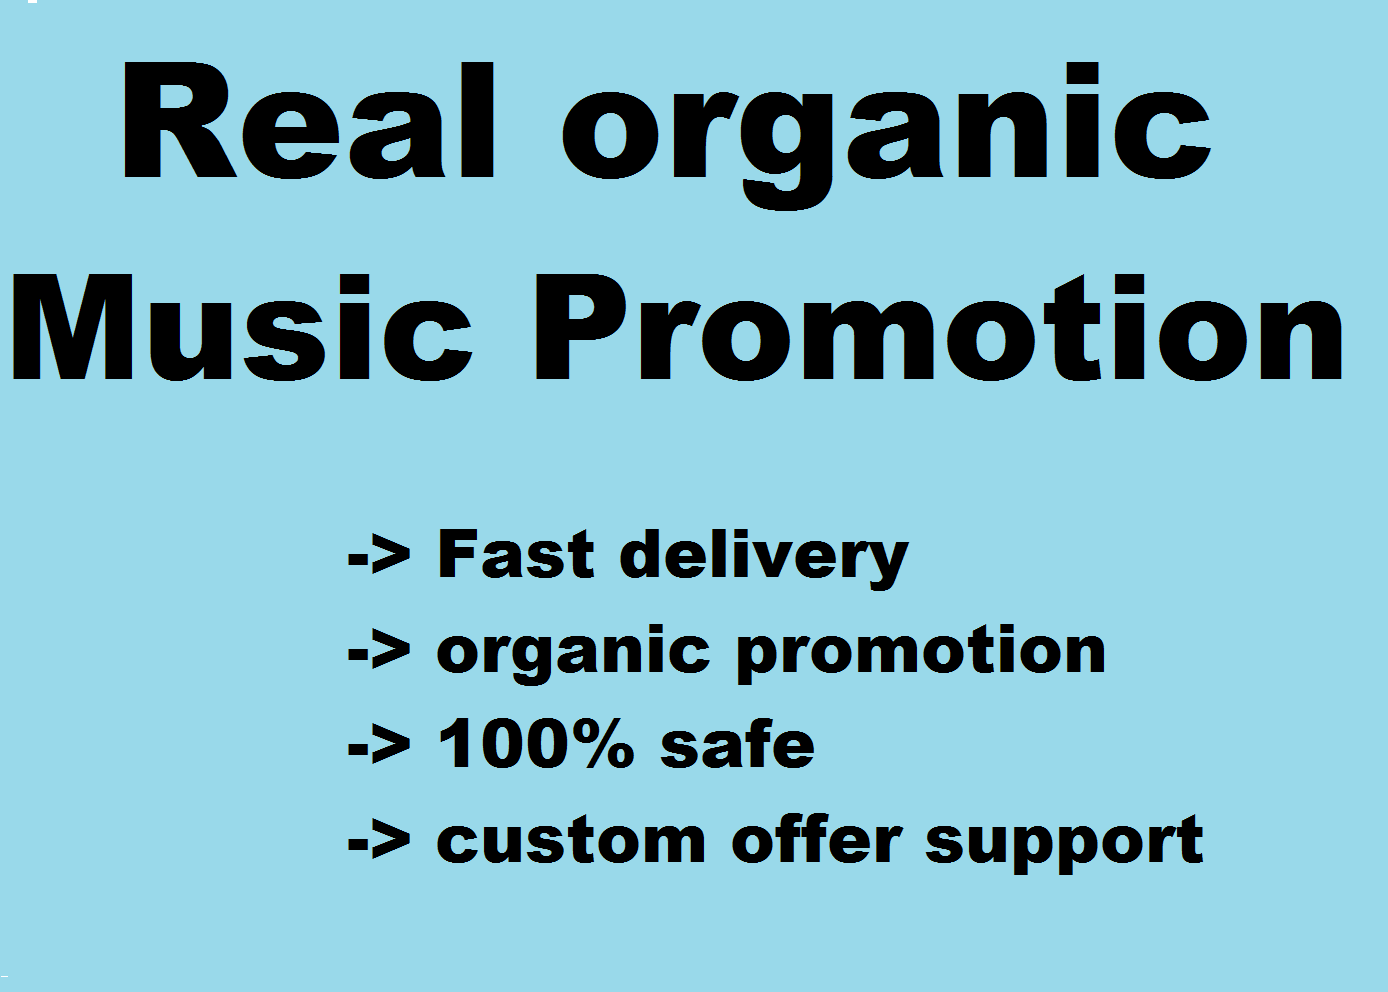 track or playlist promotion over more than 5k people with the help of social media